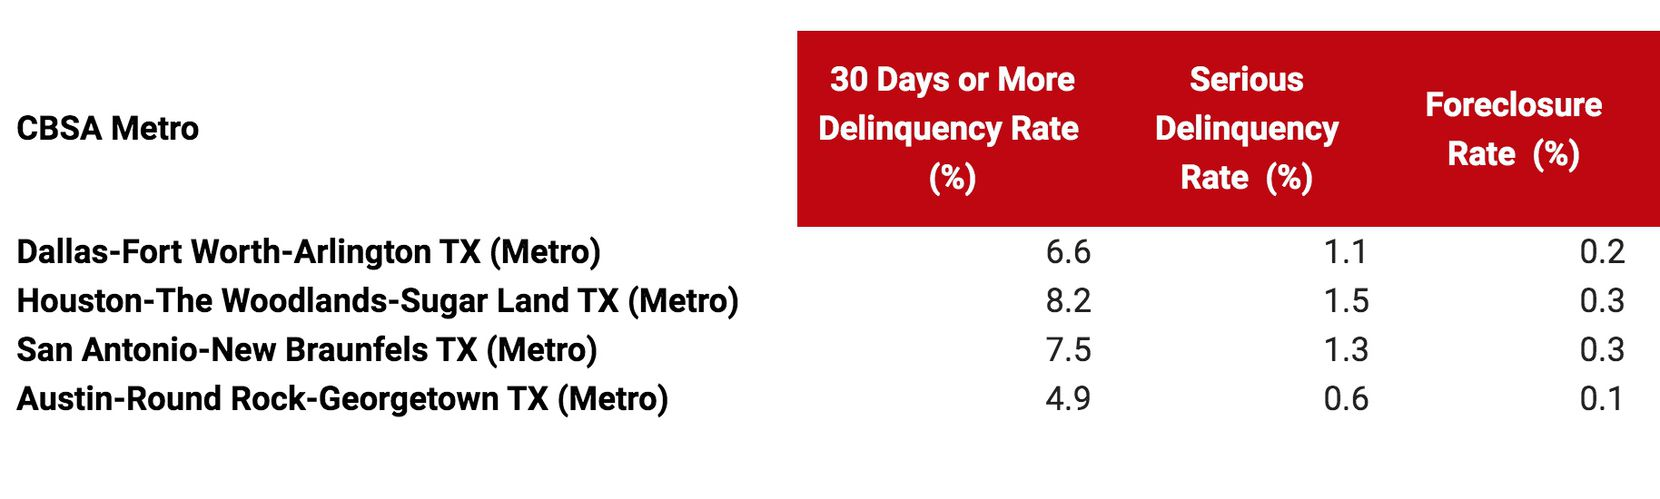 Late mortgage rates are rising in major Texas markets.